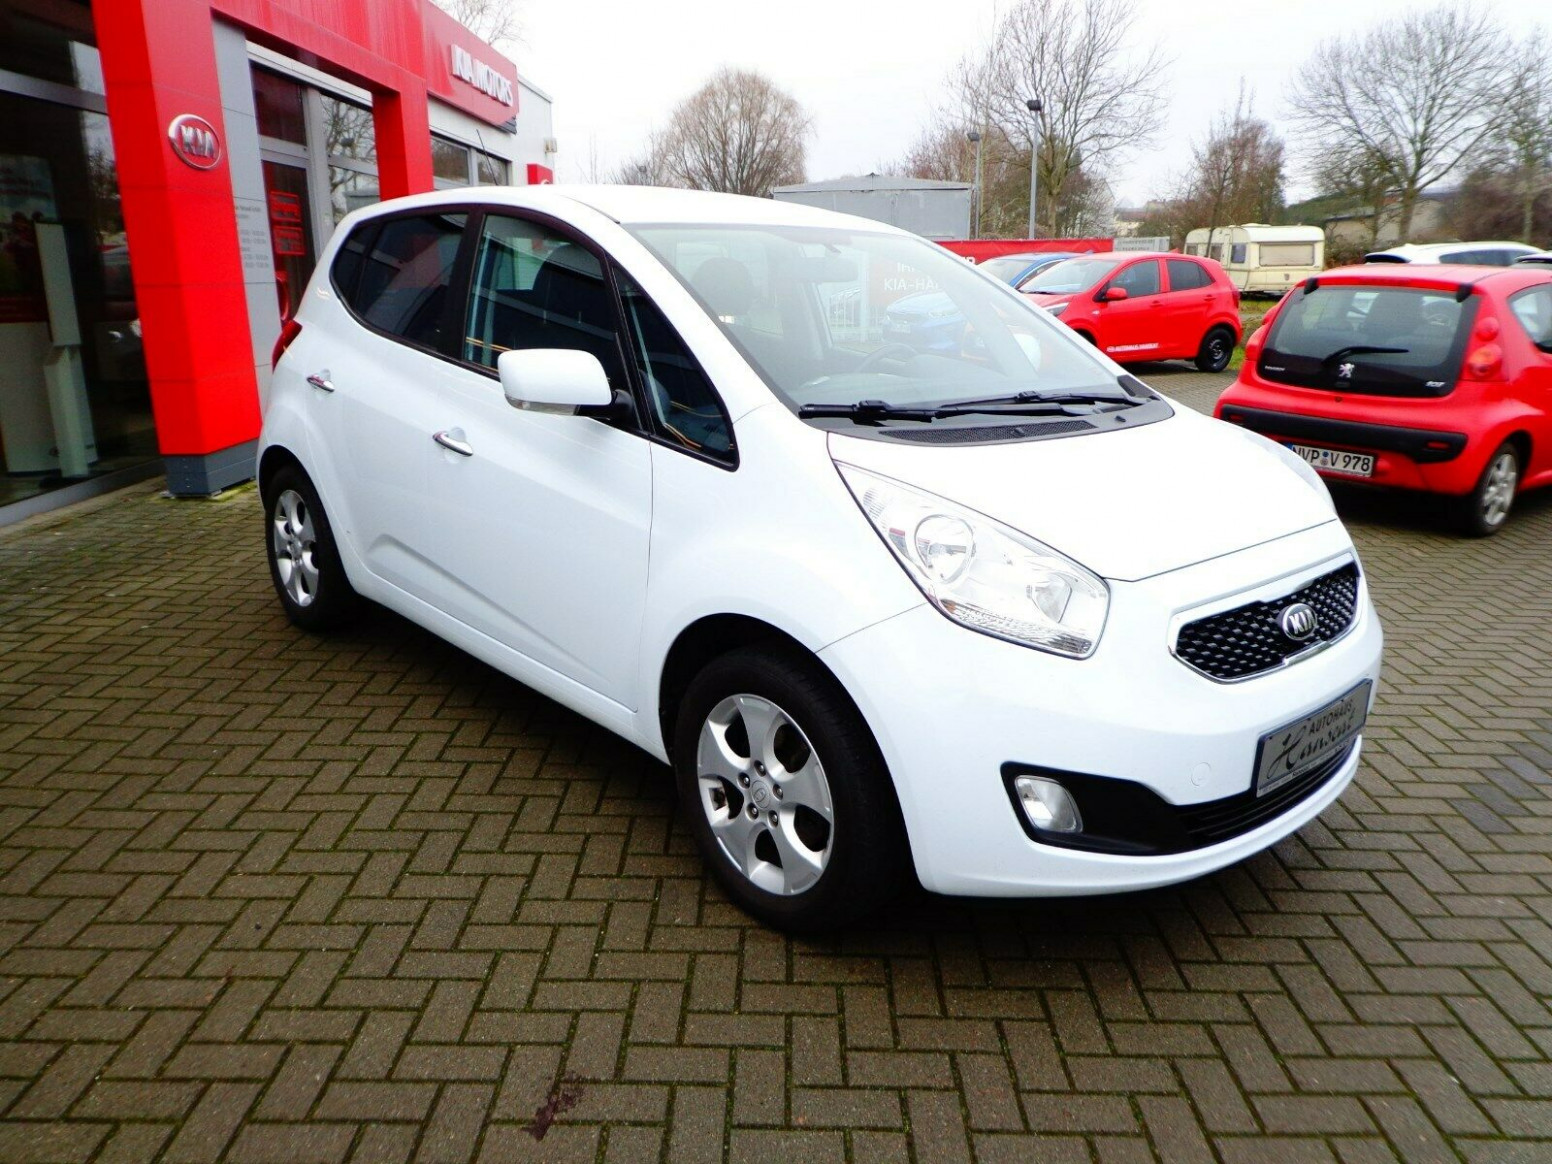 KIA Venga12.12 CVVT Dream Team Edition